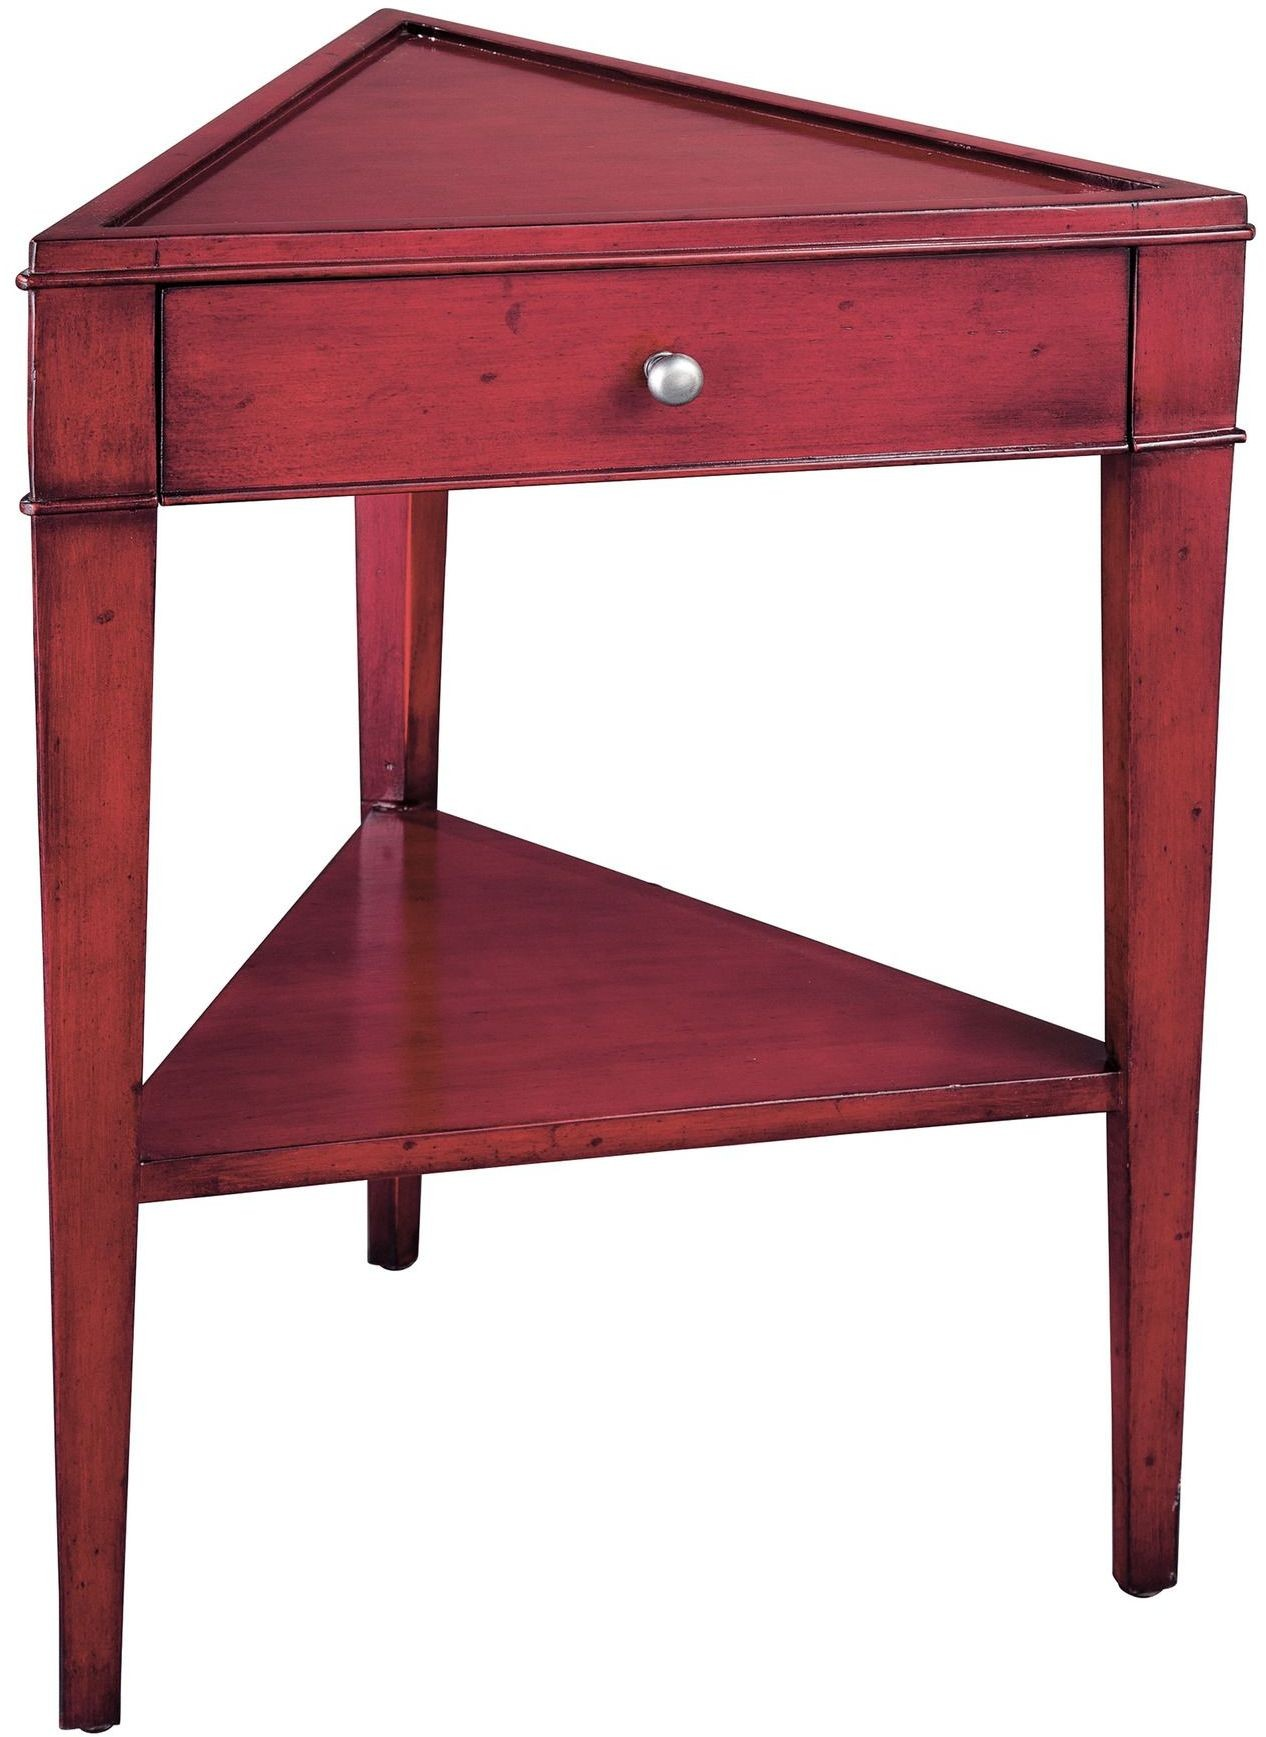 Red straight triangle side table from hekman furniture for Red side table